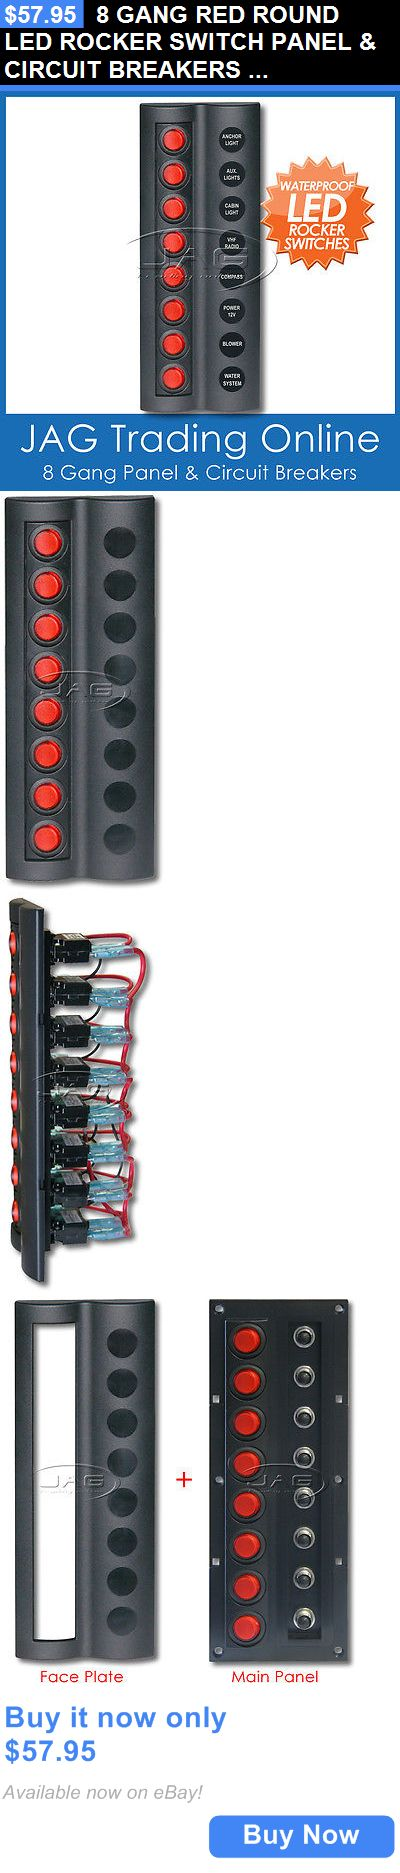 boat parts: 8 Gang Red Round Led Rocker Switch Panel And Circuit Breakers -Boat/Marine/Caravan BUY IT NOW ONLY: $57.95